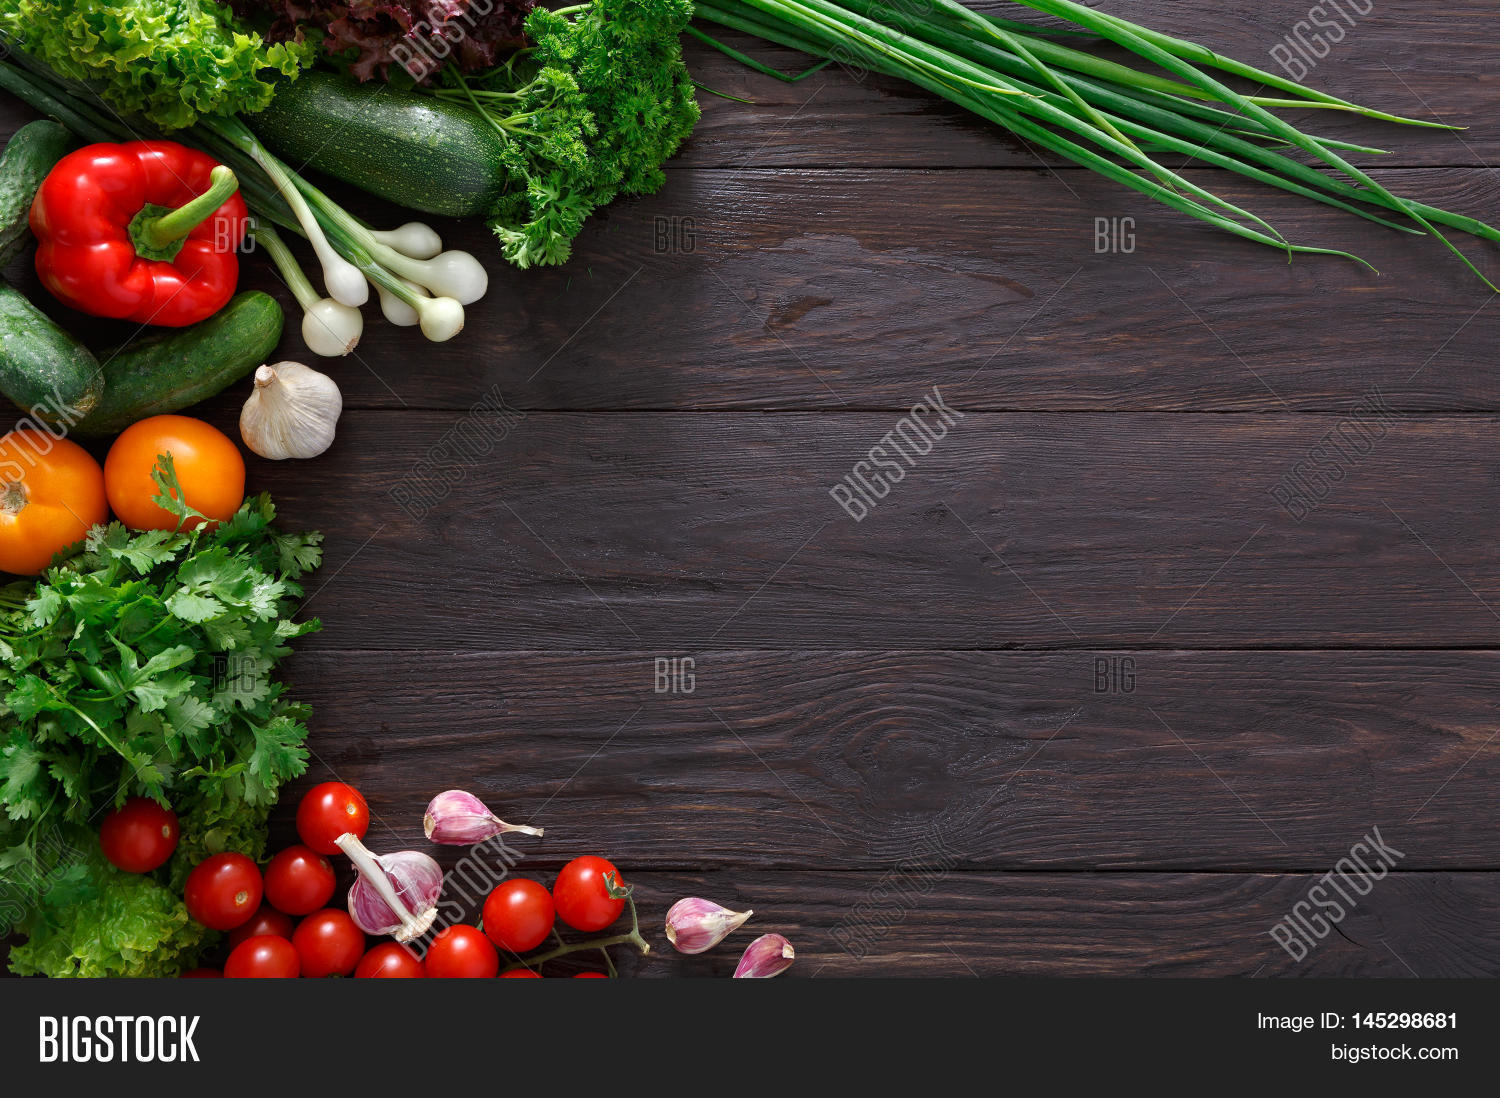 Border fresh organic vegetables on image photo bigstock